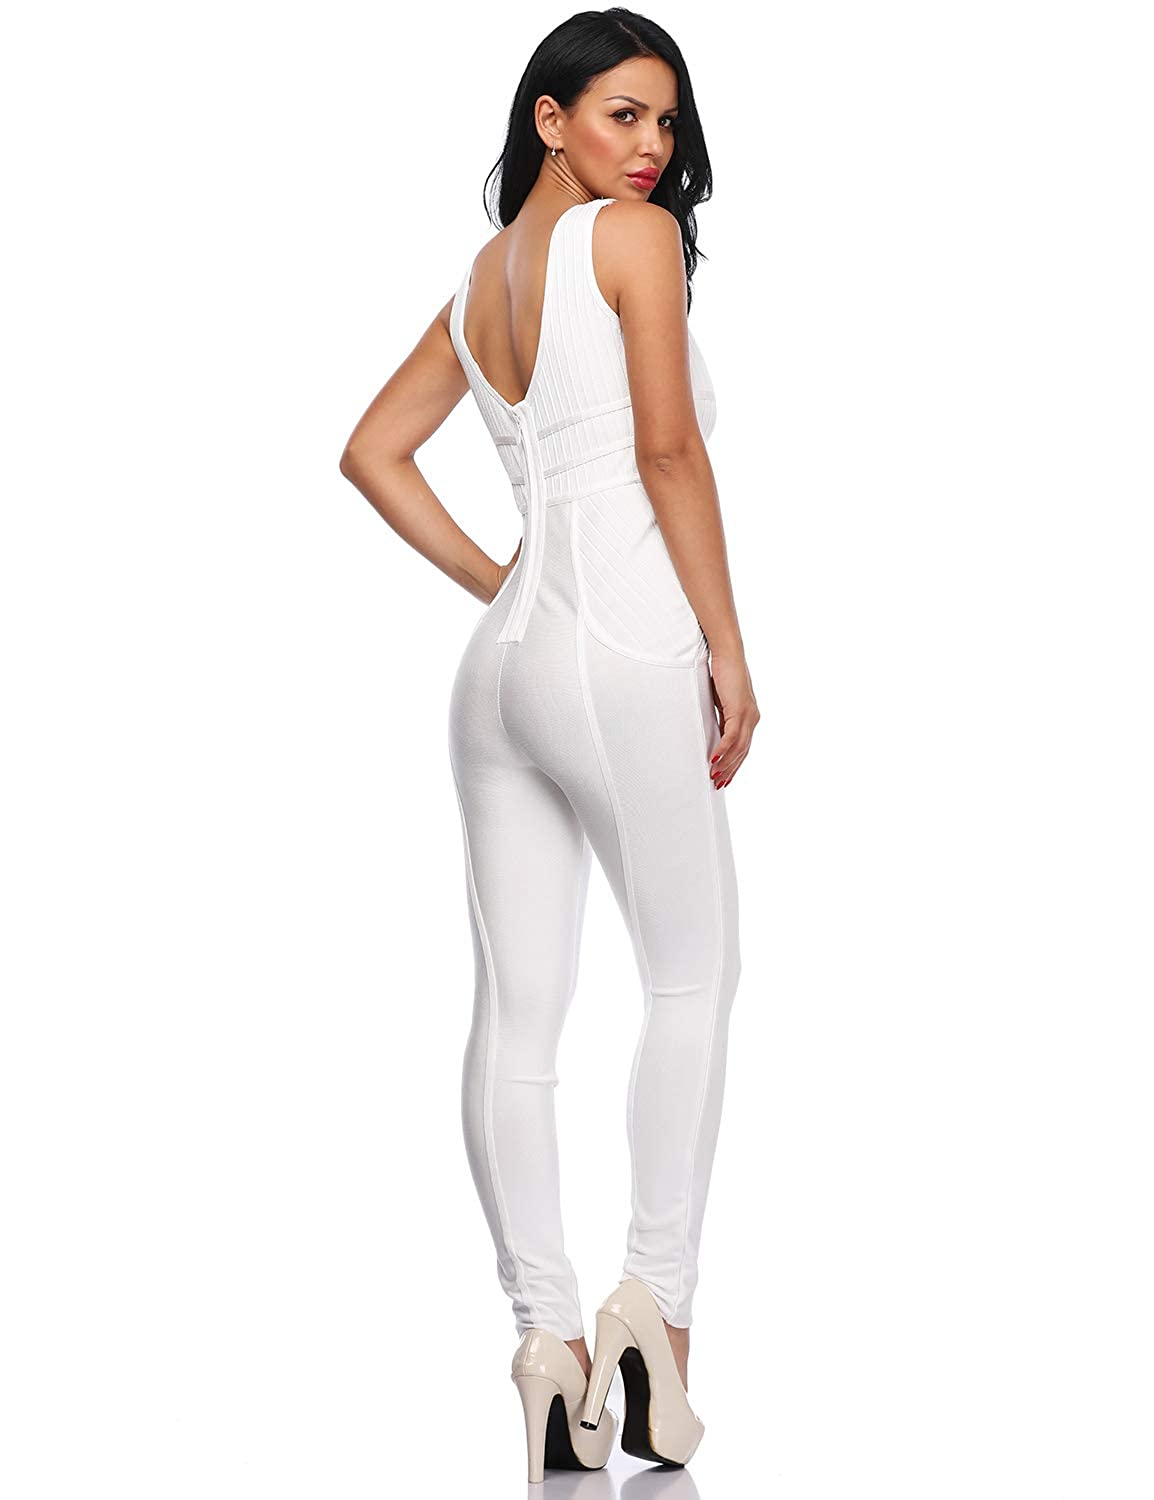 debd6a62fbcc Amazon.com  Hego Women s White Bandage Club Night Out Jumpsuits Deep V Neck  Cut Out H5598  Clothing